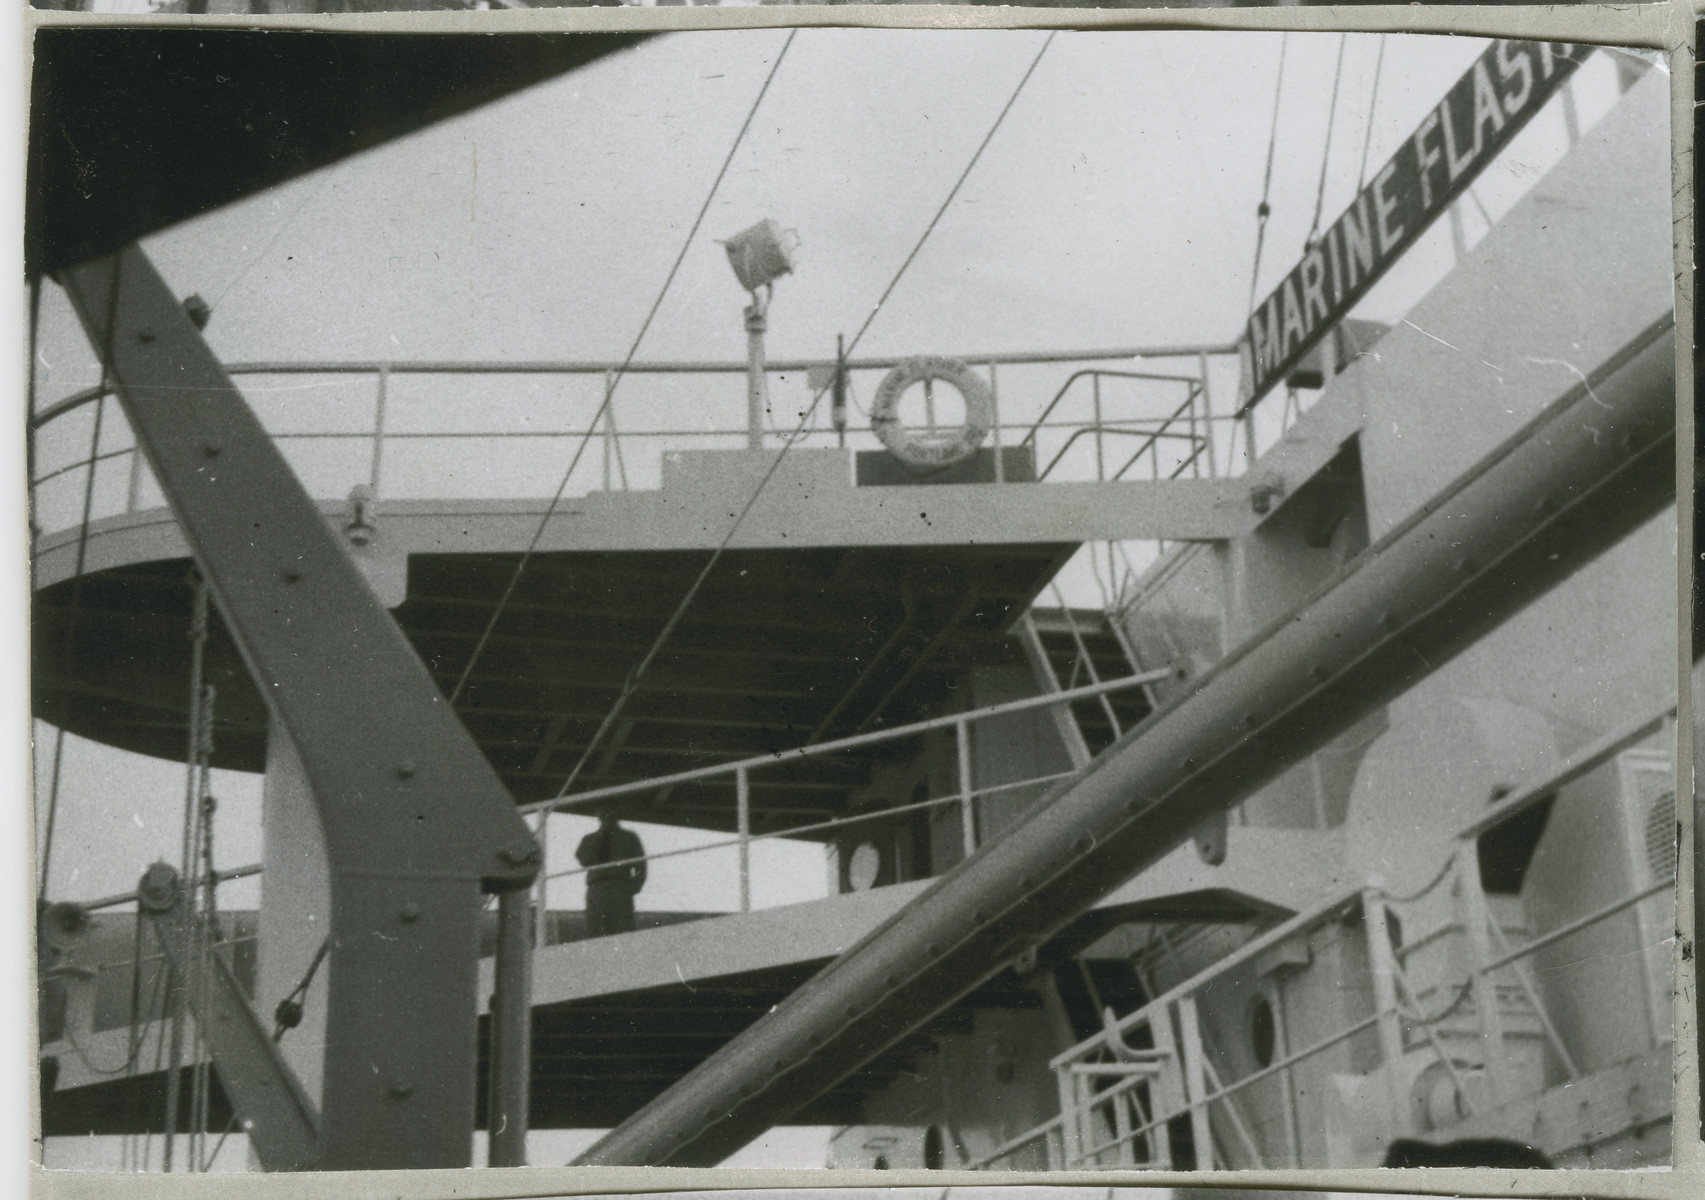 View of the decks of the Marine Flasher.